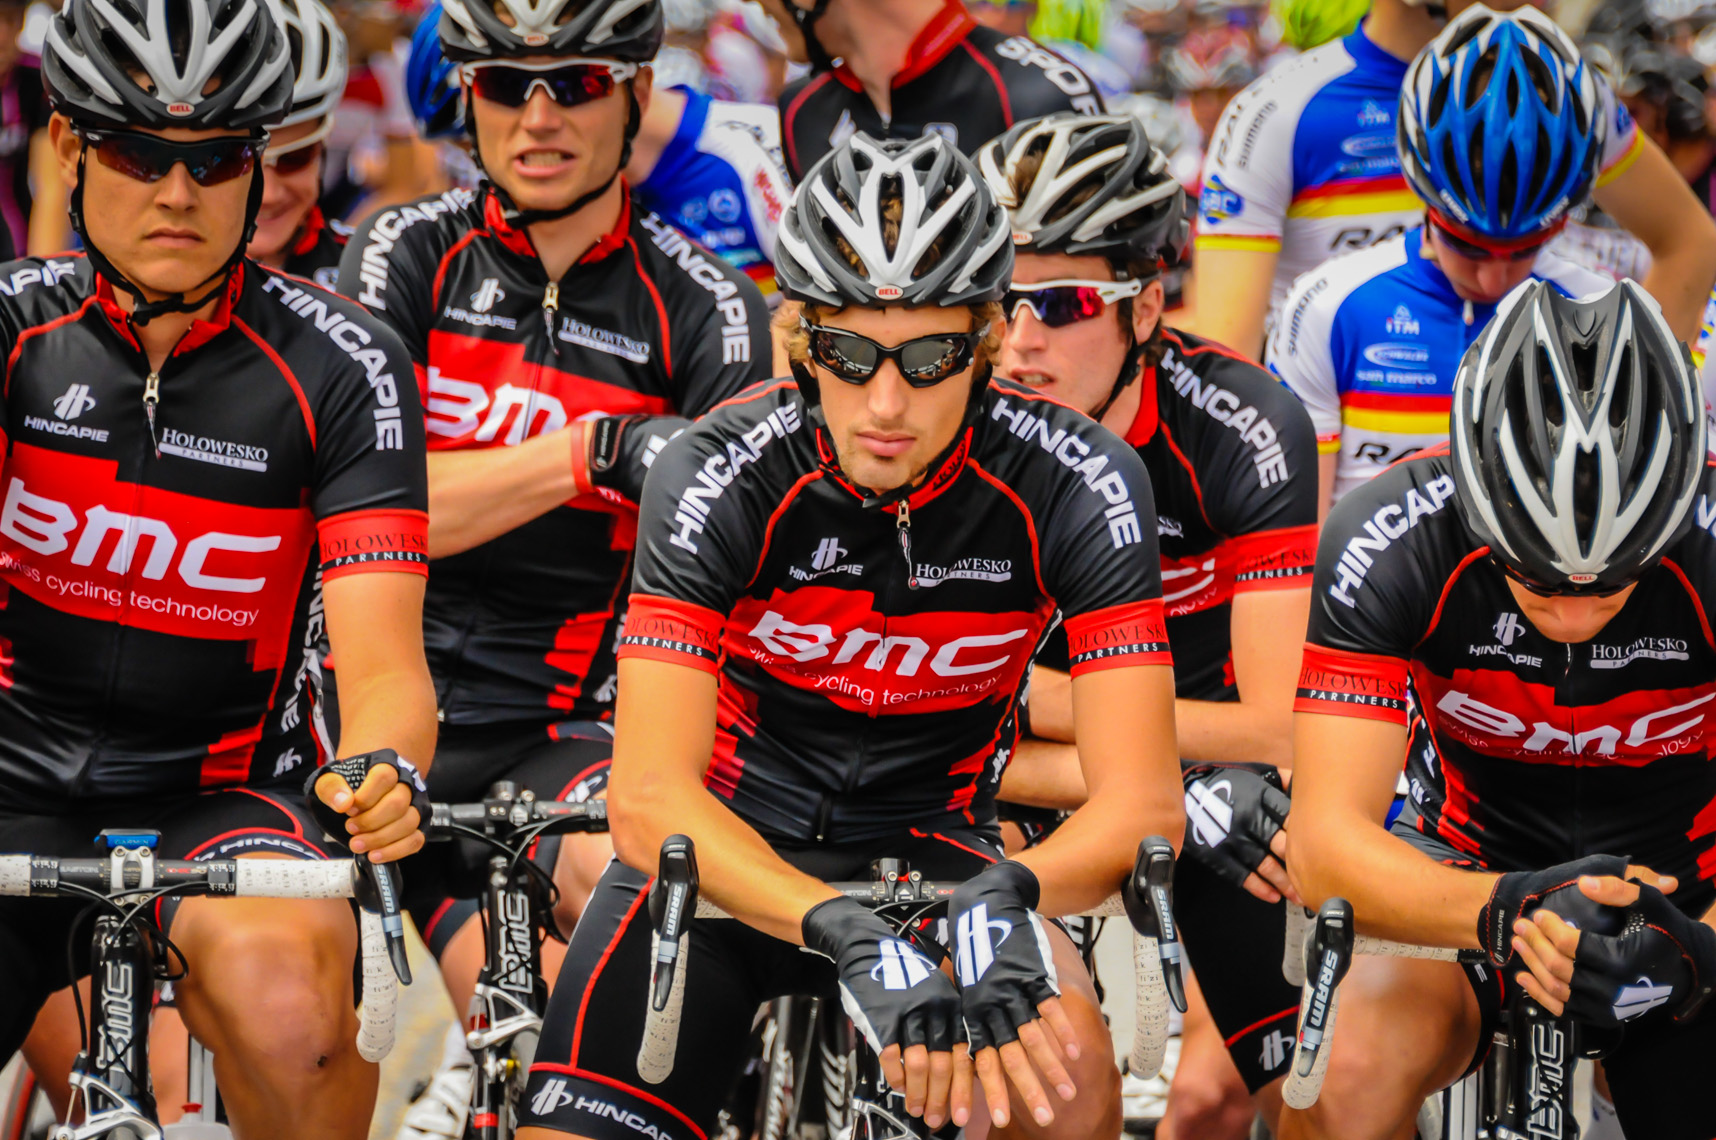 2012 Tour of the Battenkill